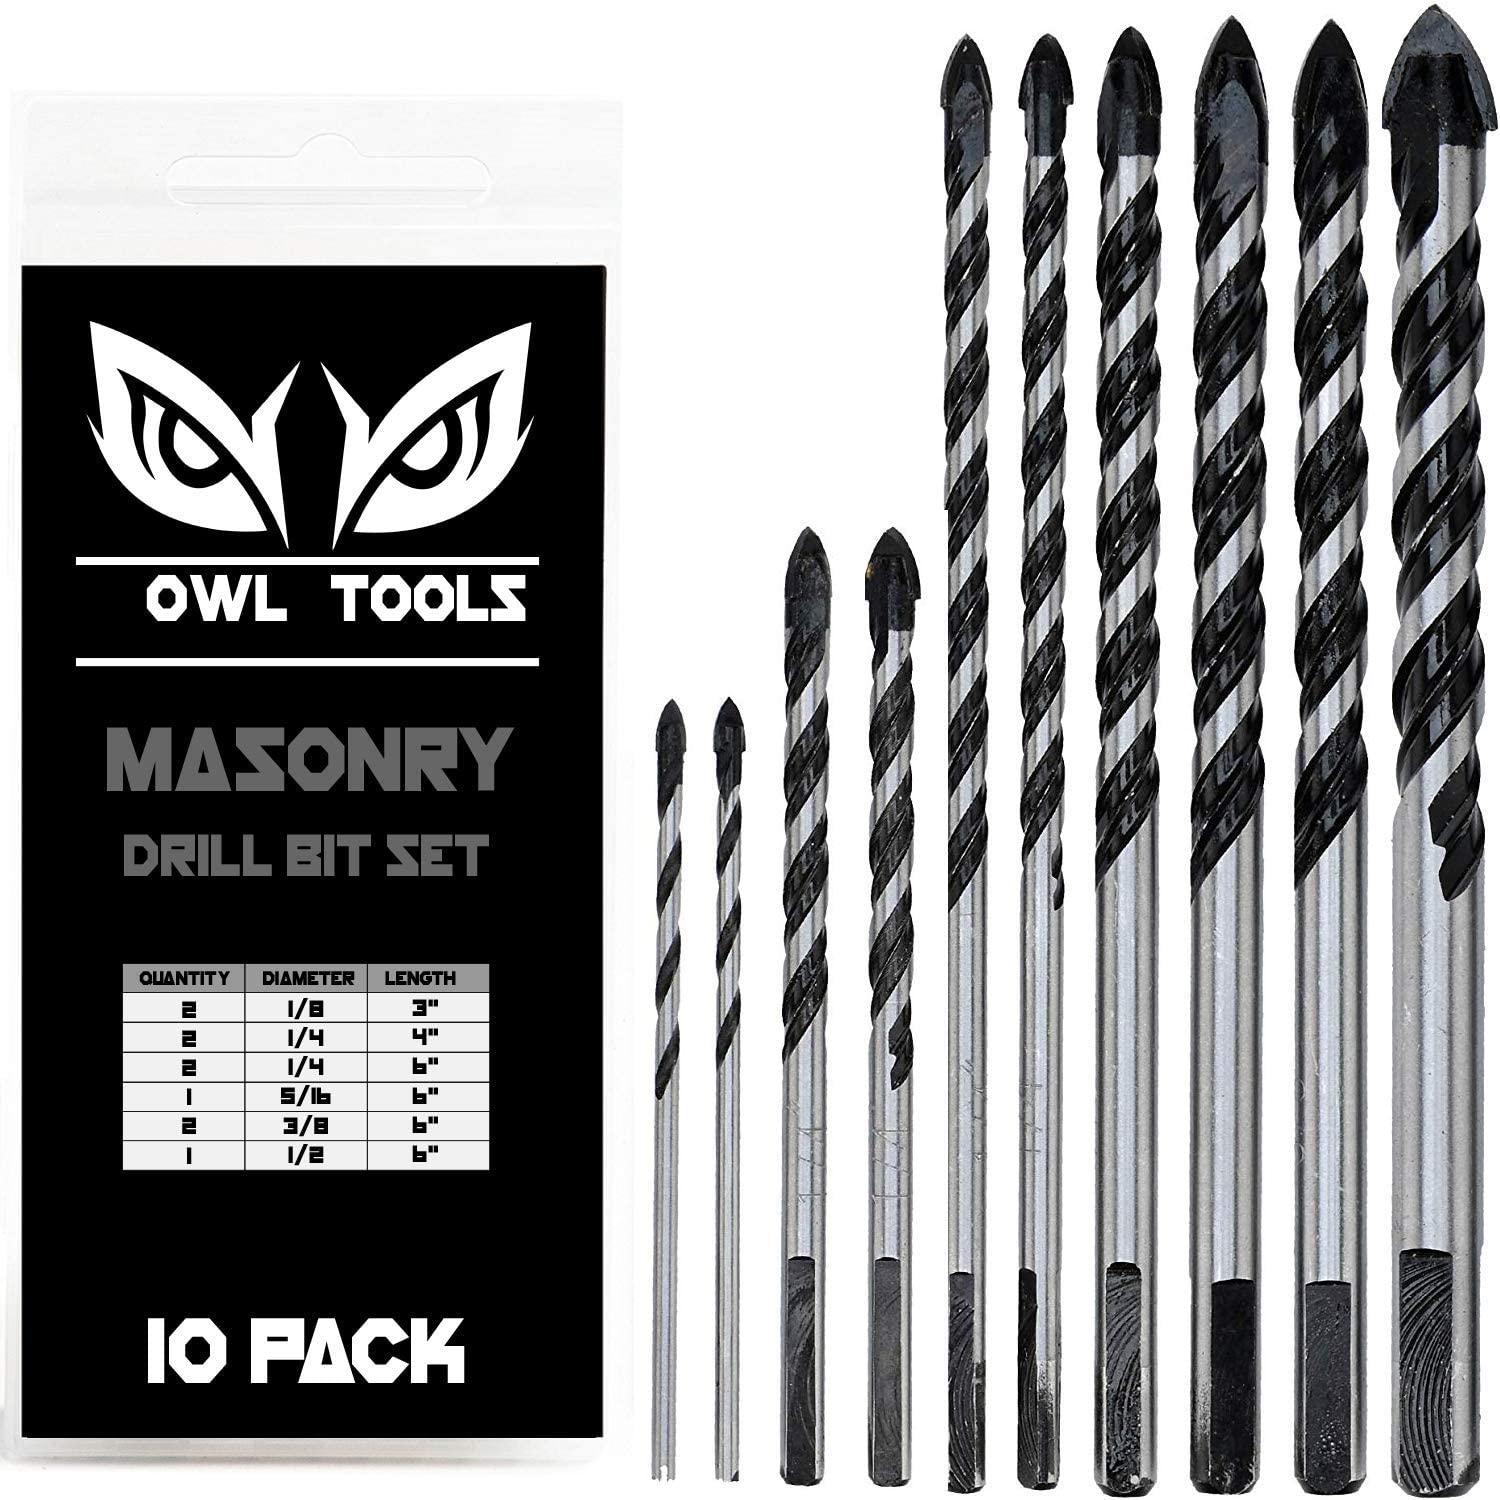 Pack of 10x New Sandvik 8mm x 120mm Masonry Drill Bits